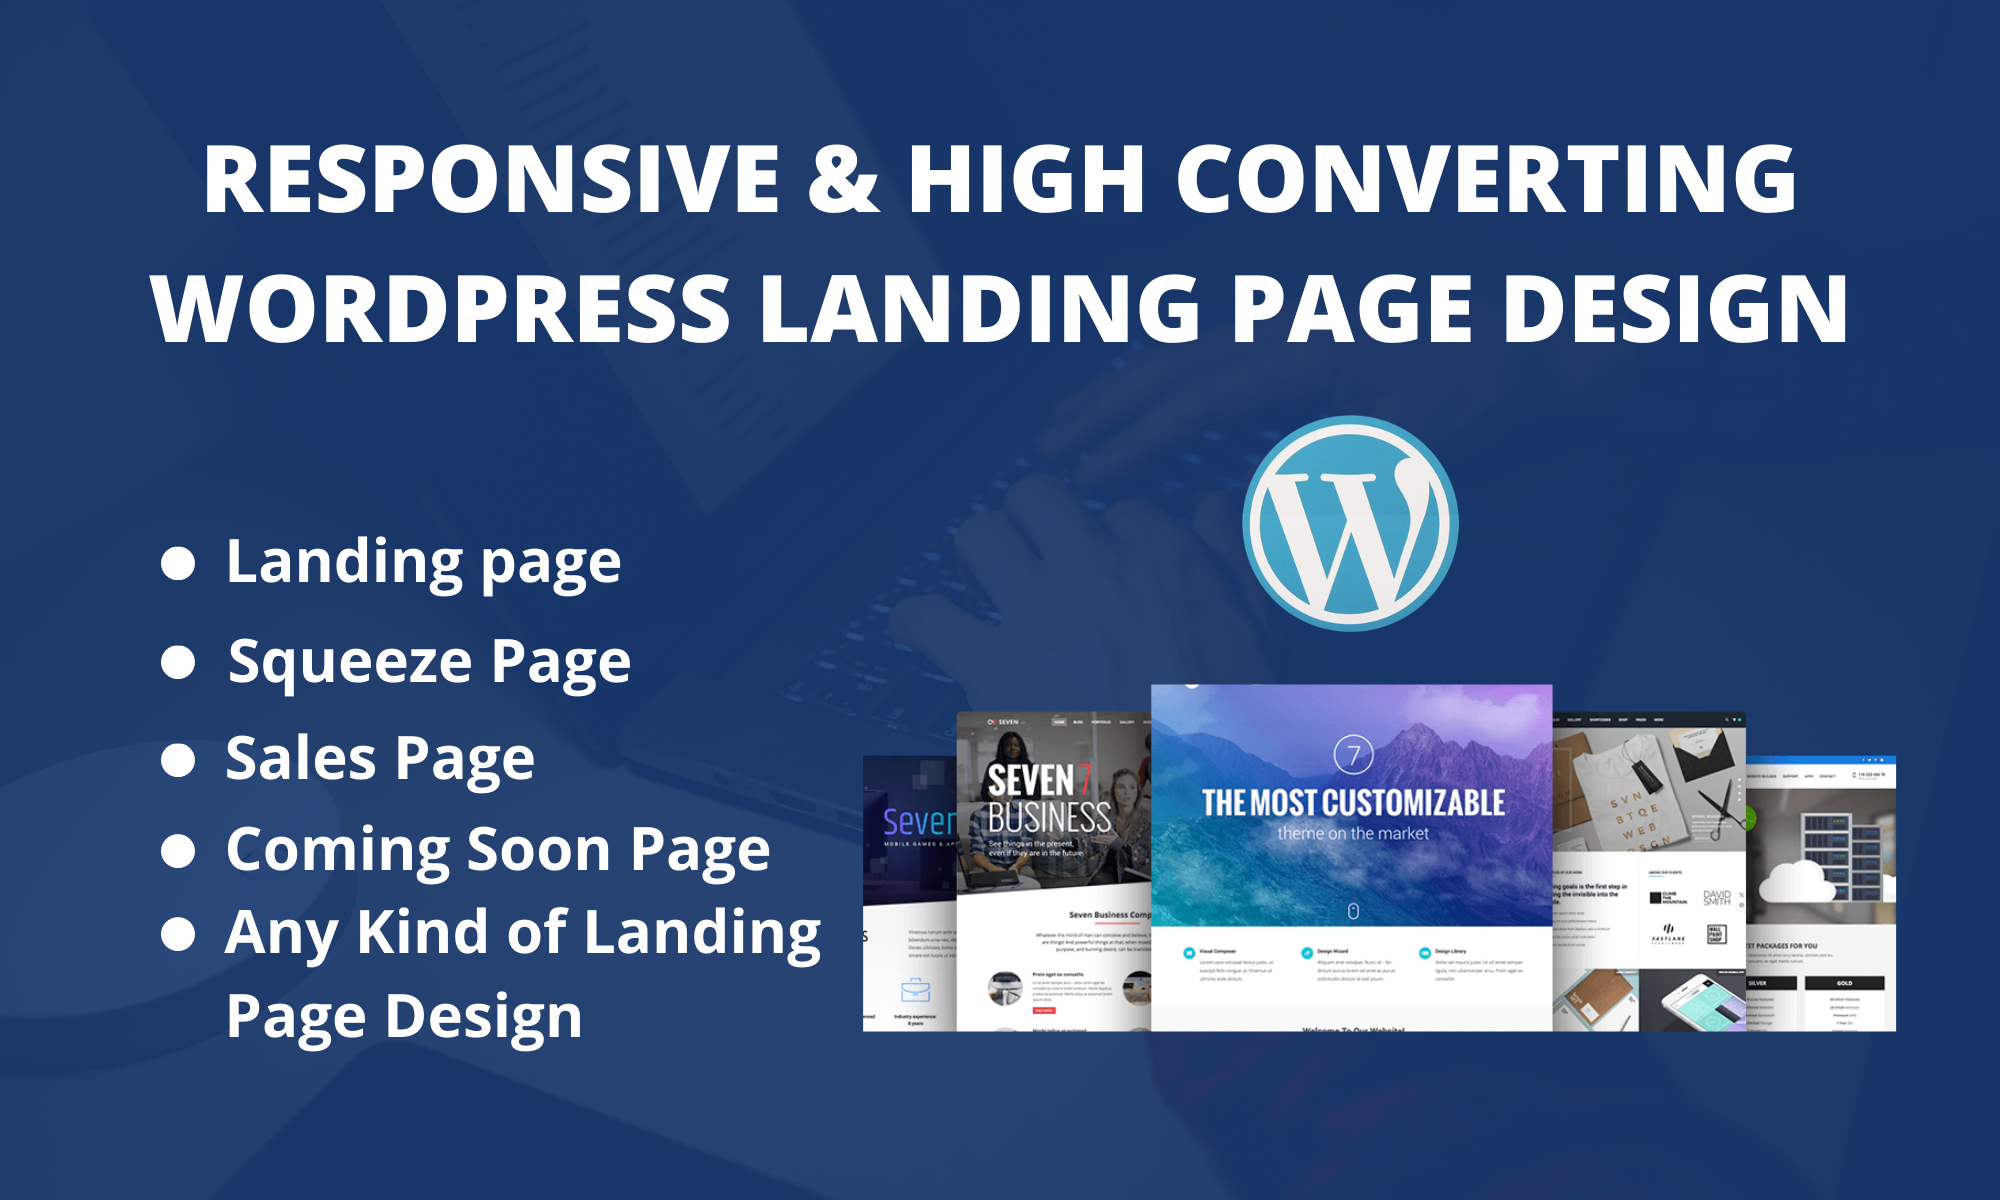 I will create a responsive WordPress landing page design